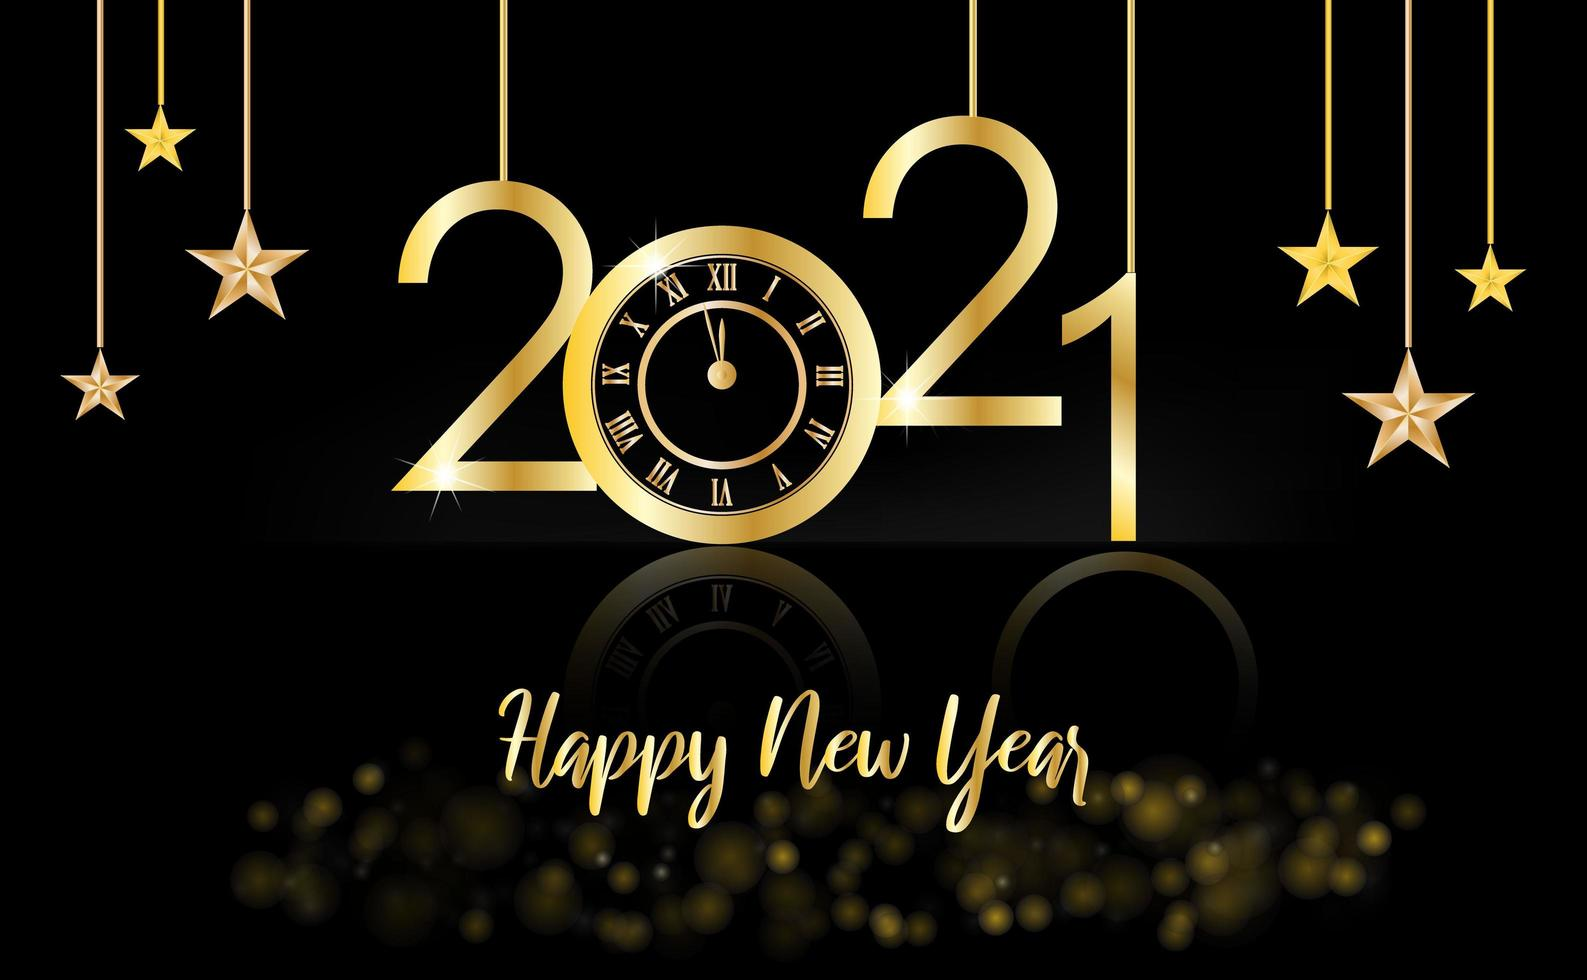 happy-new-year-2021-gold-and-black-backg